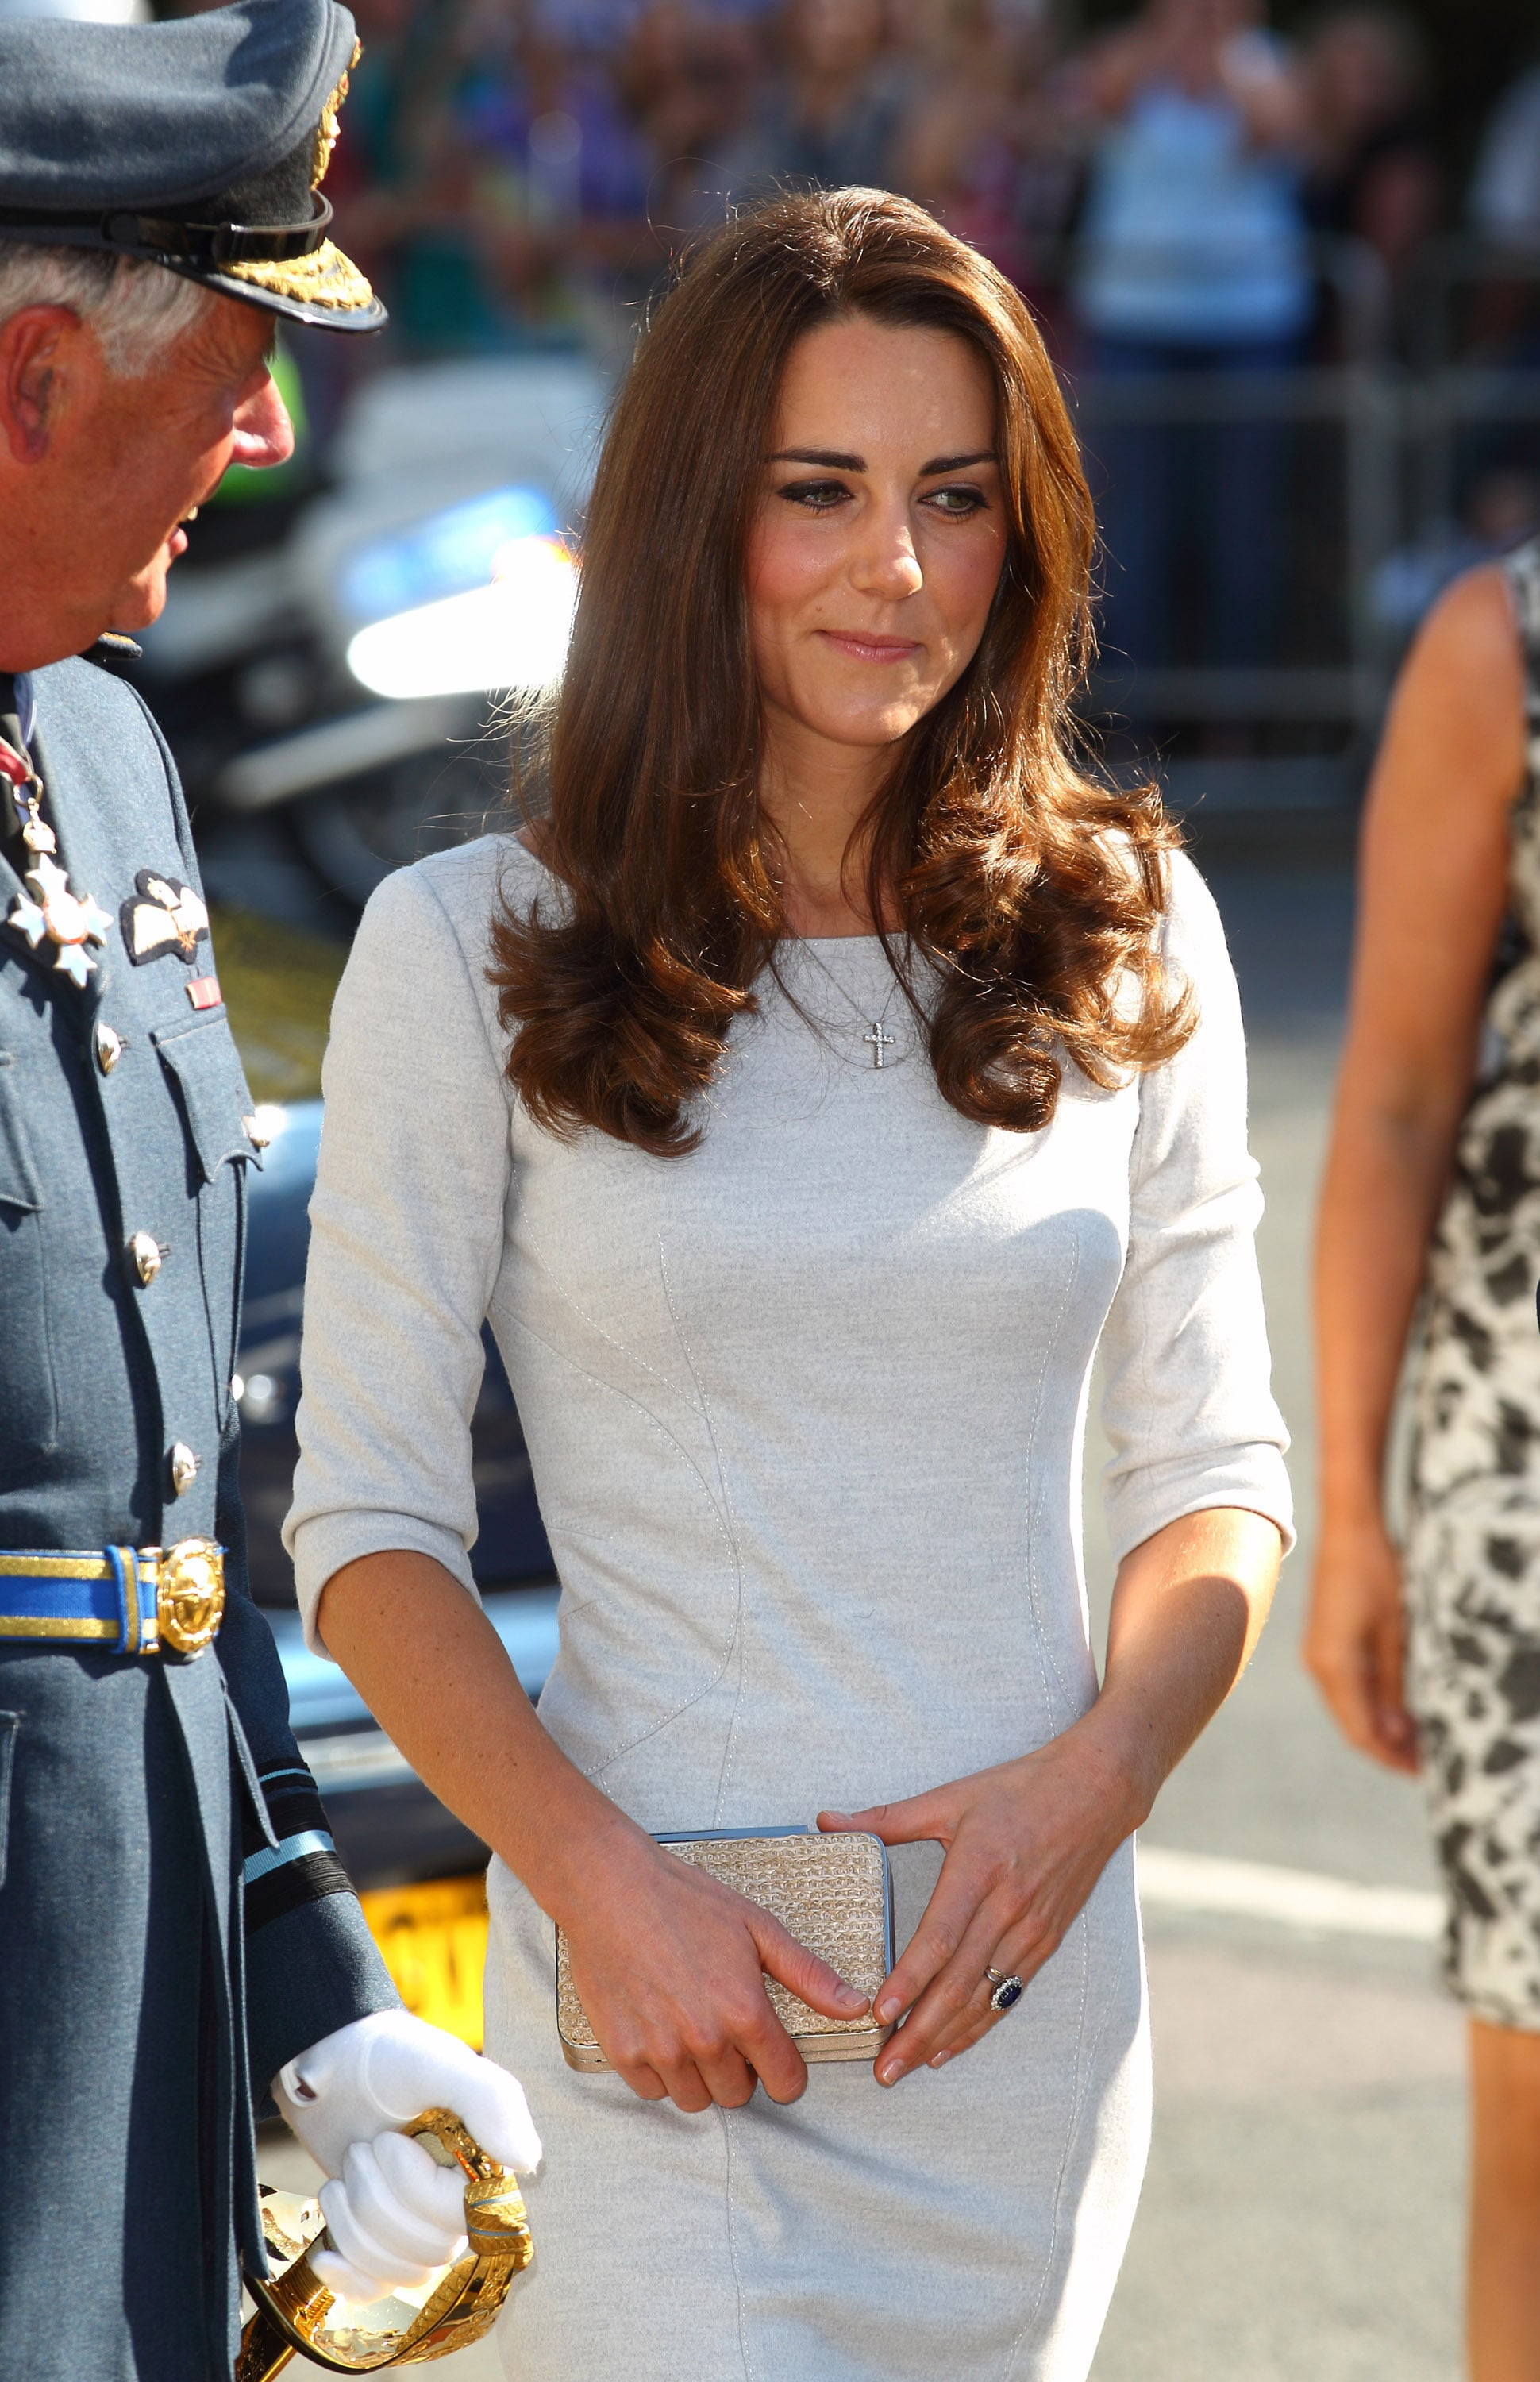 Kate Middleton carried a small clutch.